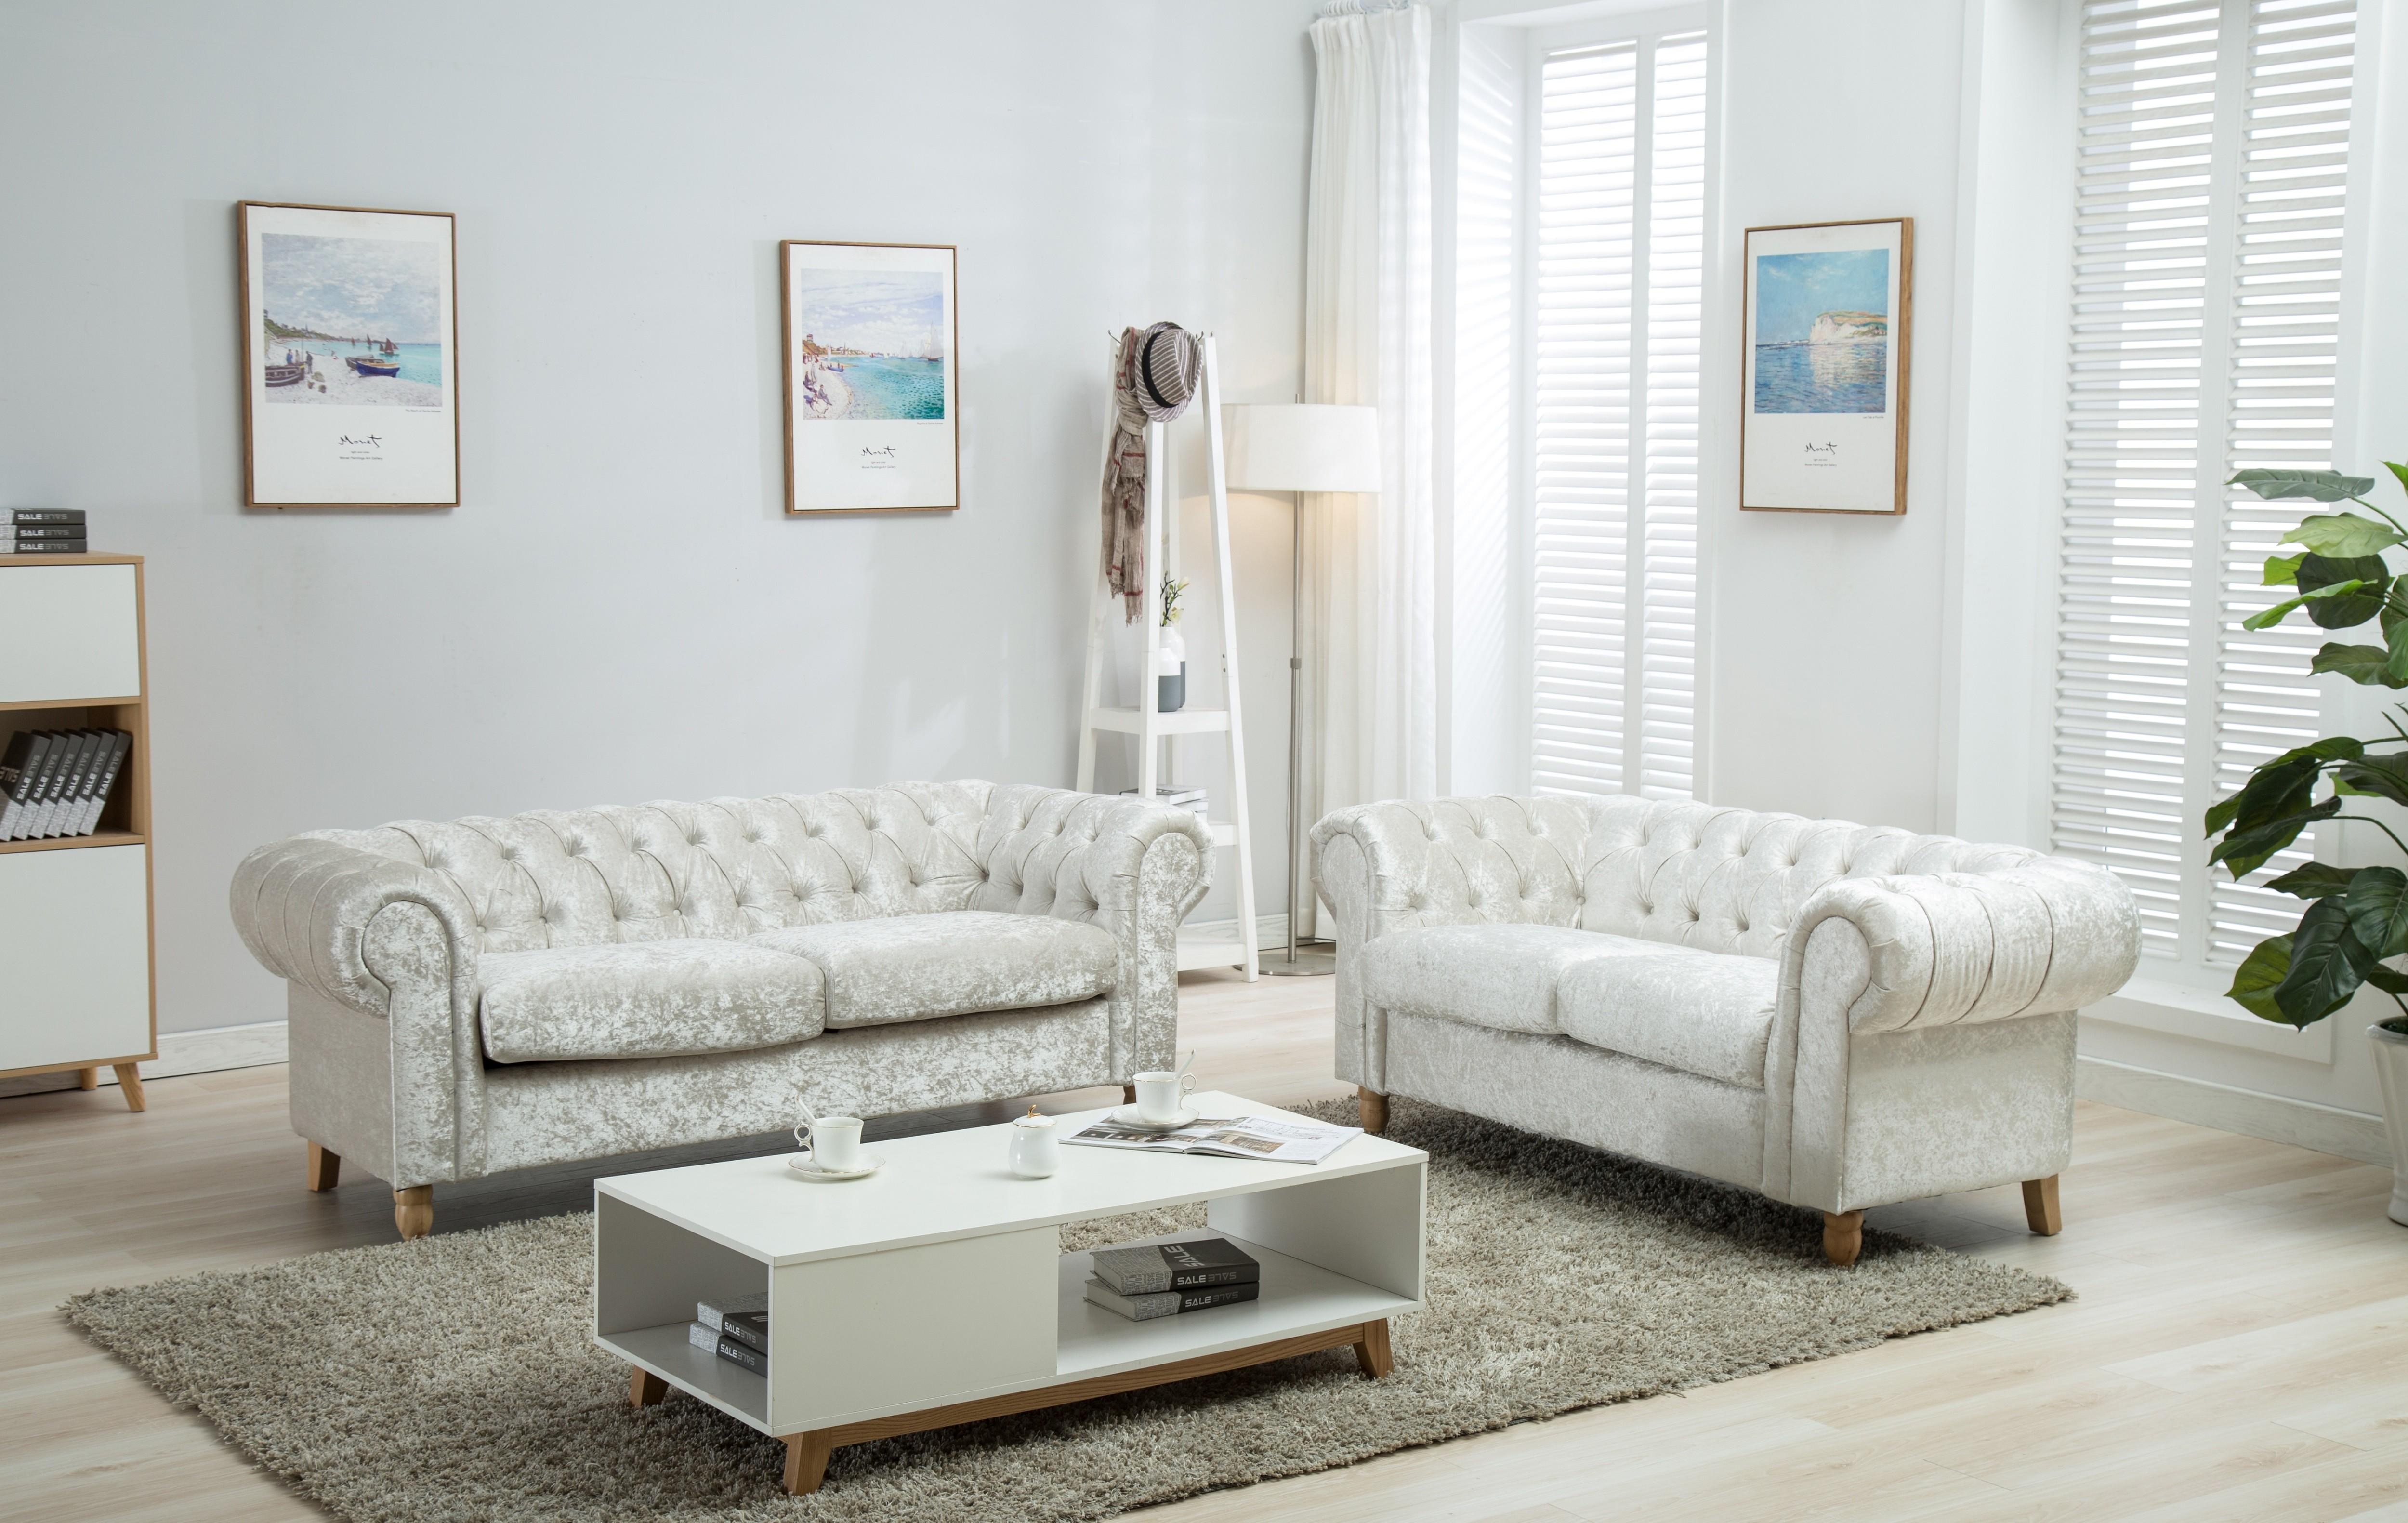 Prime Canterbury Arctic Silver Crushed Velvet Fabric Chesterfield Sofa Suite 3 And 2 Seater Creativecarmelina Interior Chair Design Creativecarmelinacom